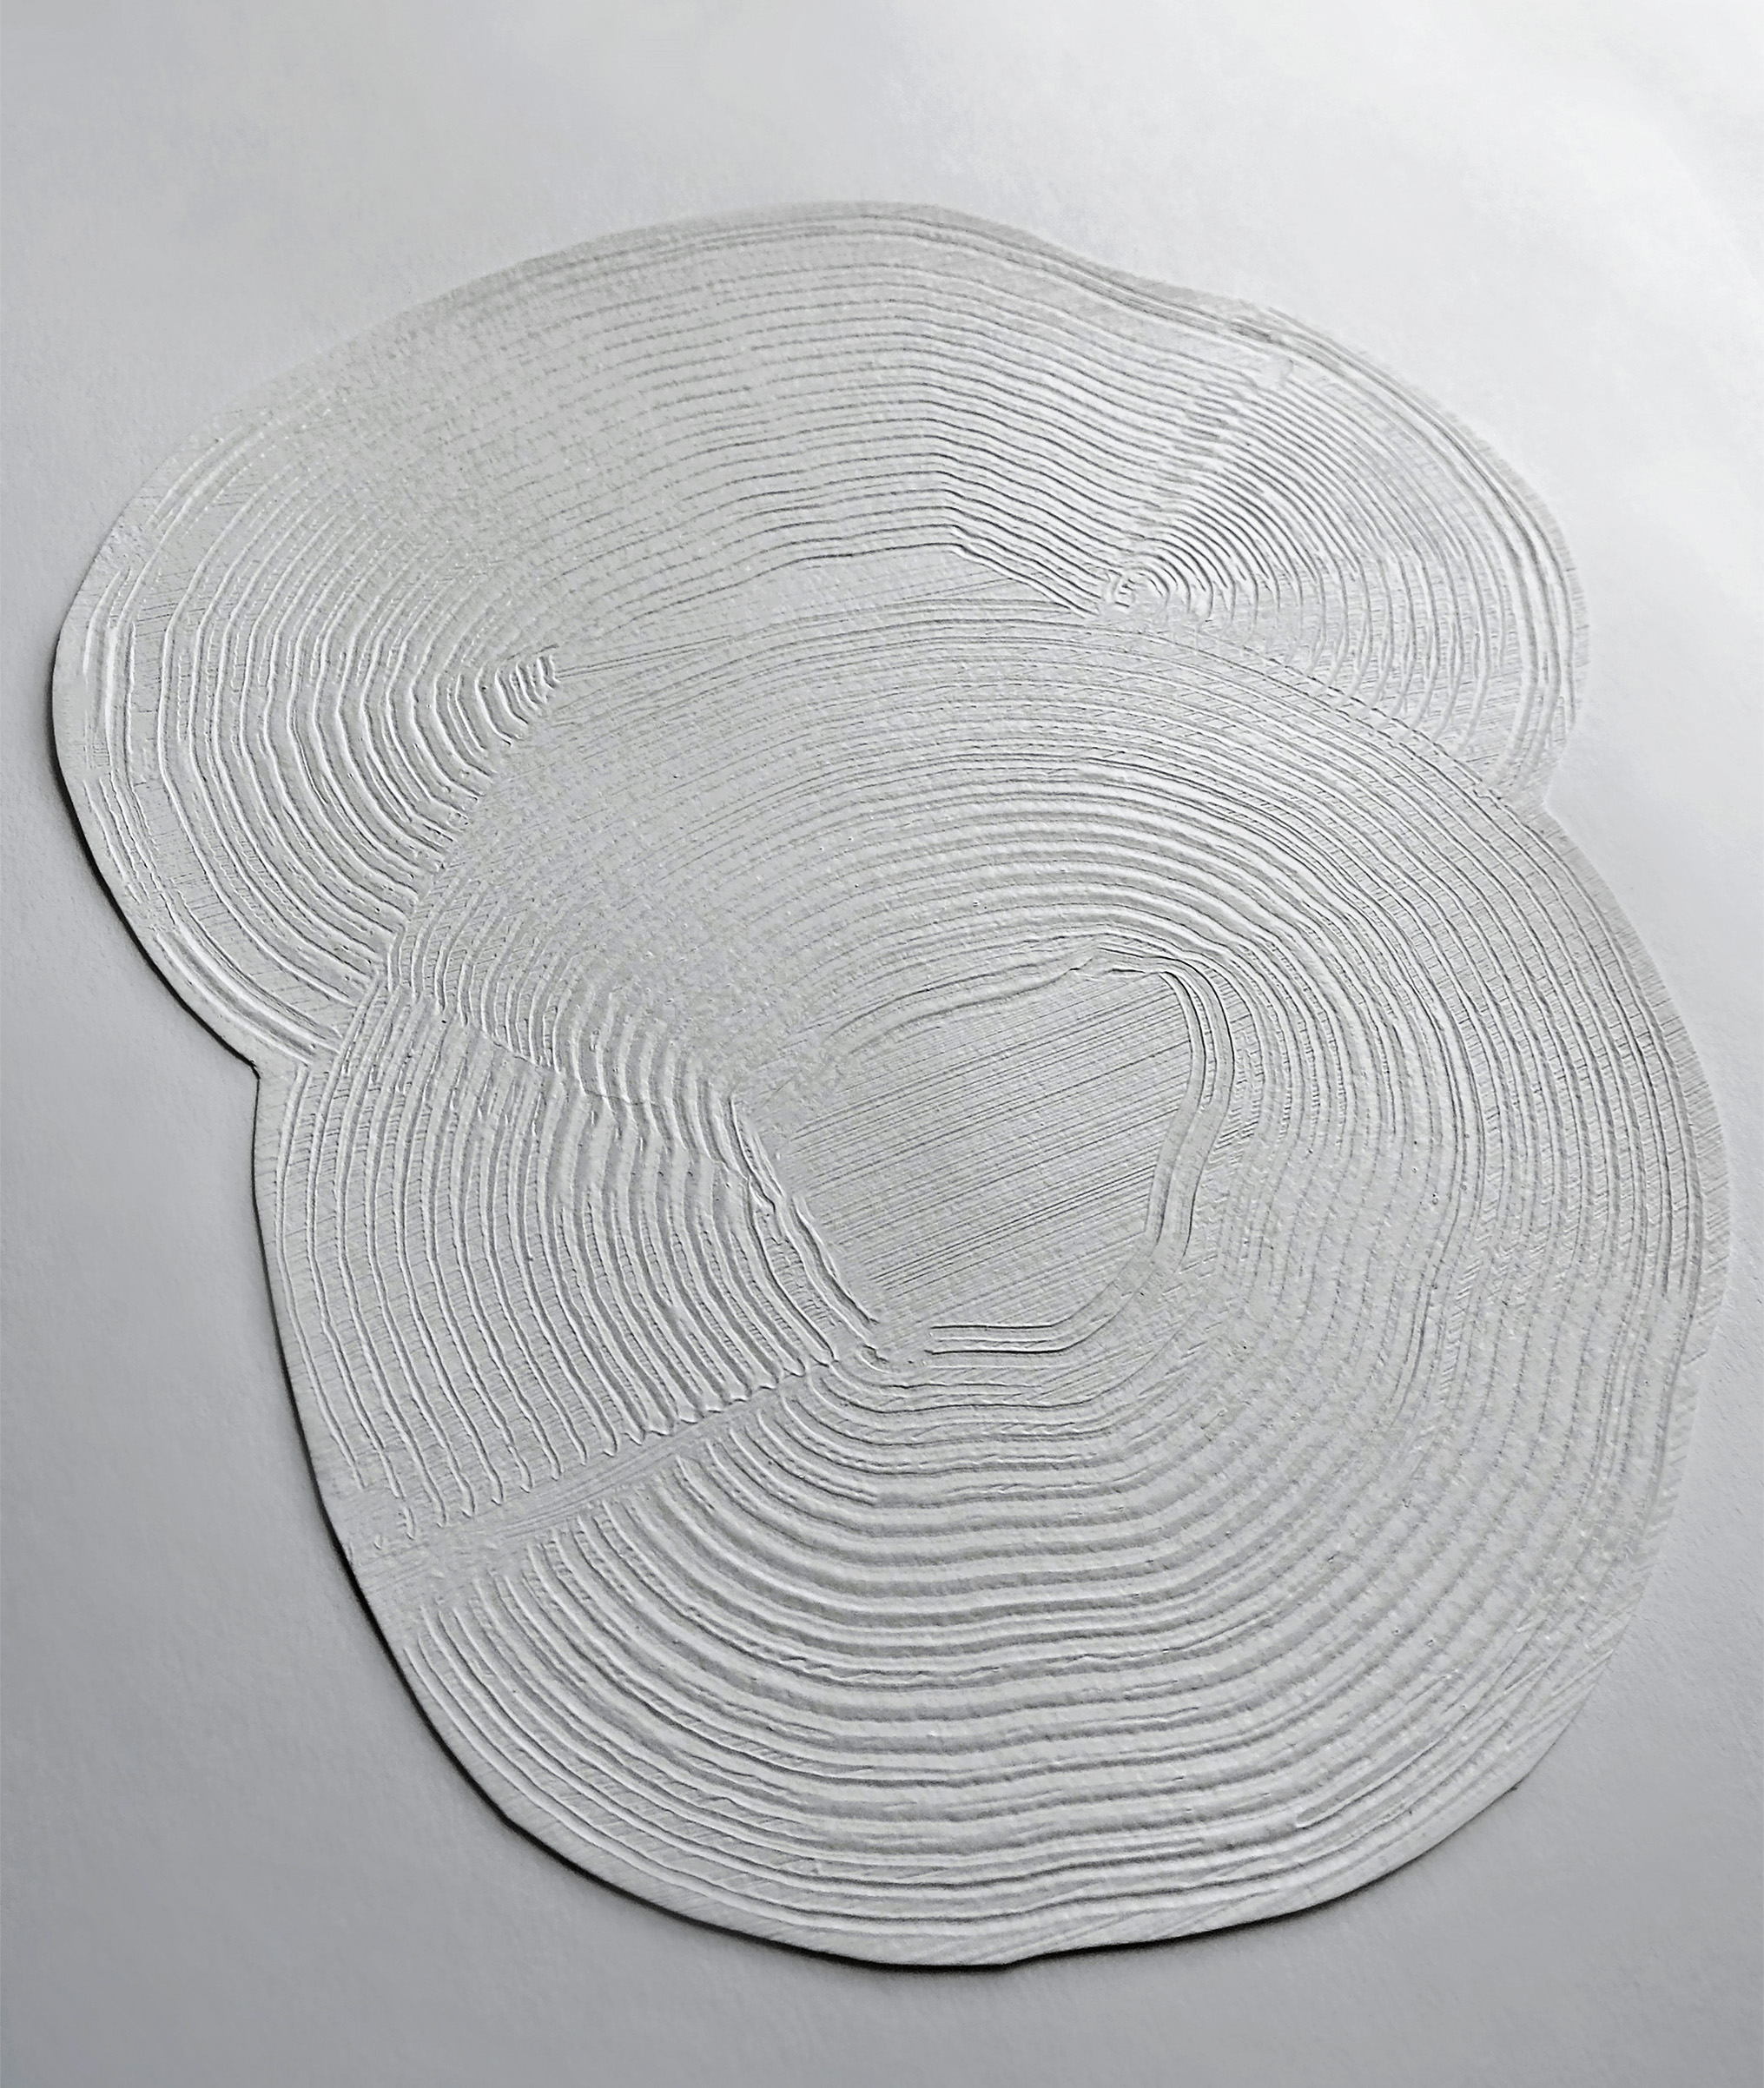 Zen rug by Emily Broom is made from recycled PET yarn